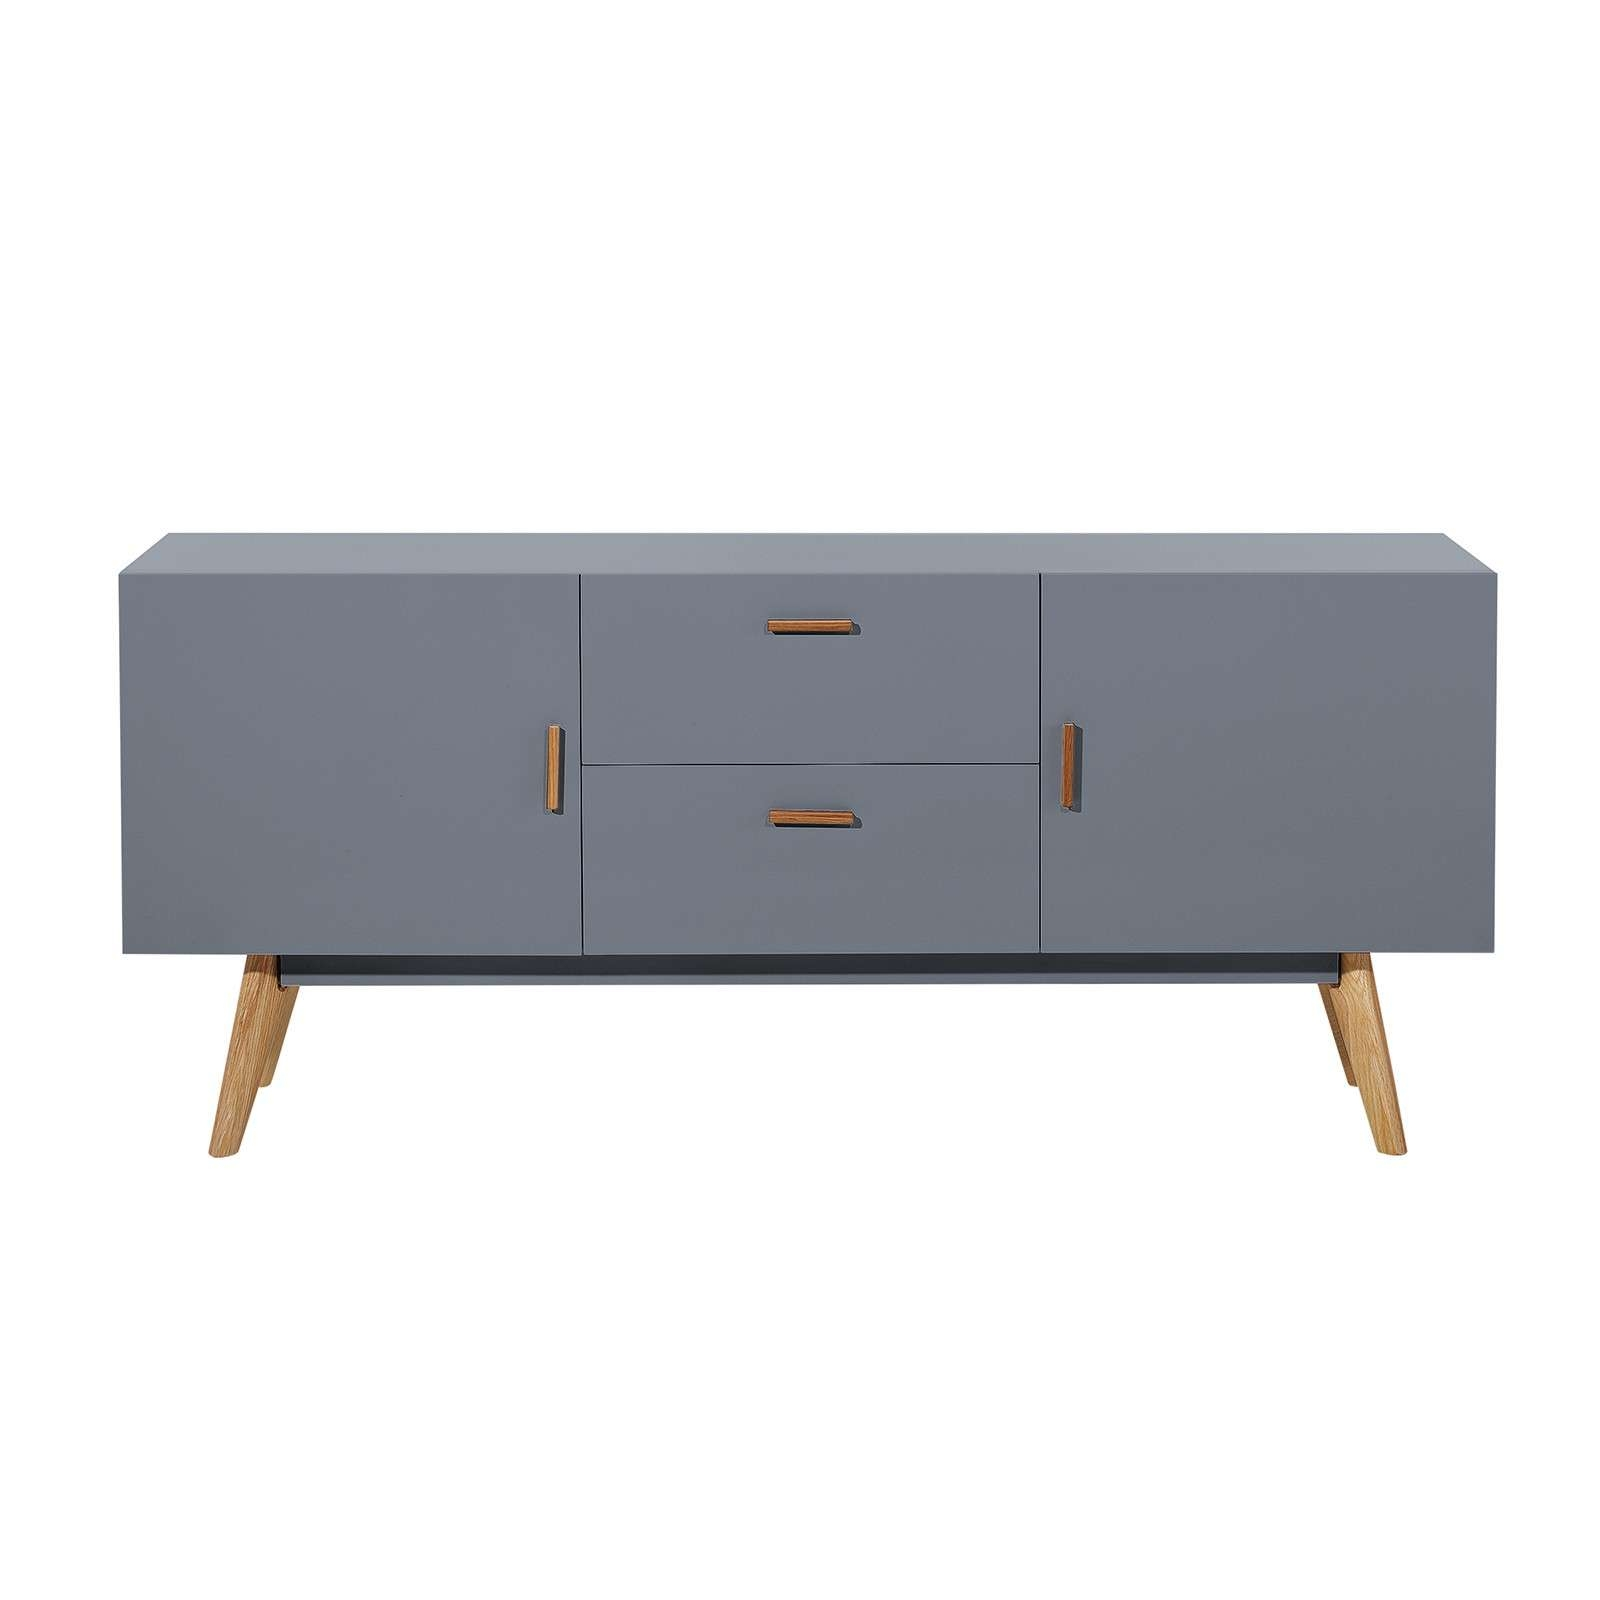 Scandinavian Retro Style White Sideboard Abreo Home Furniture Pertaining To Retro Sideboards (View 11 of 20)